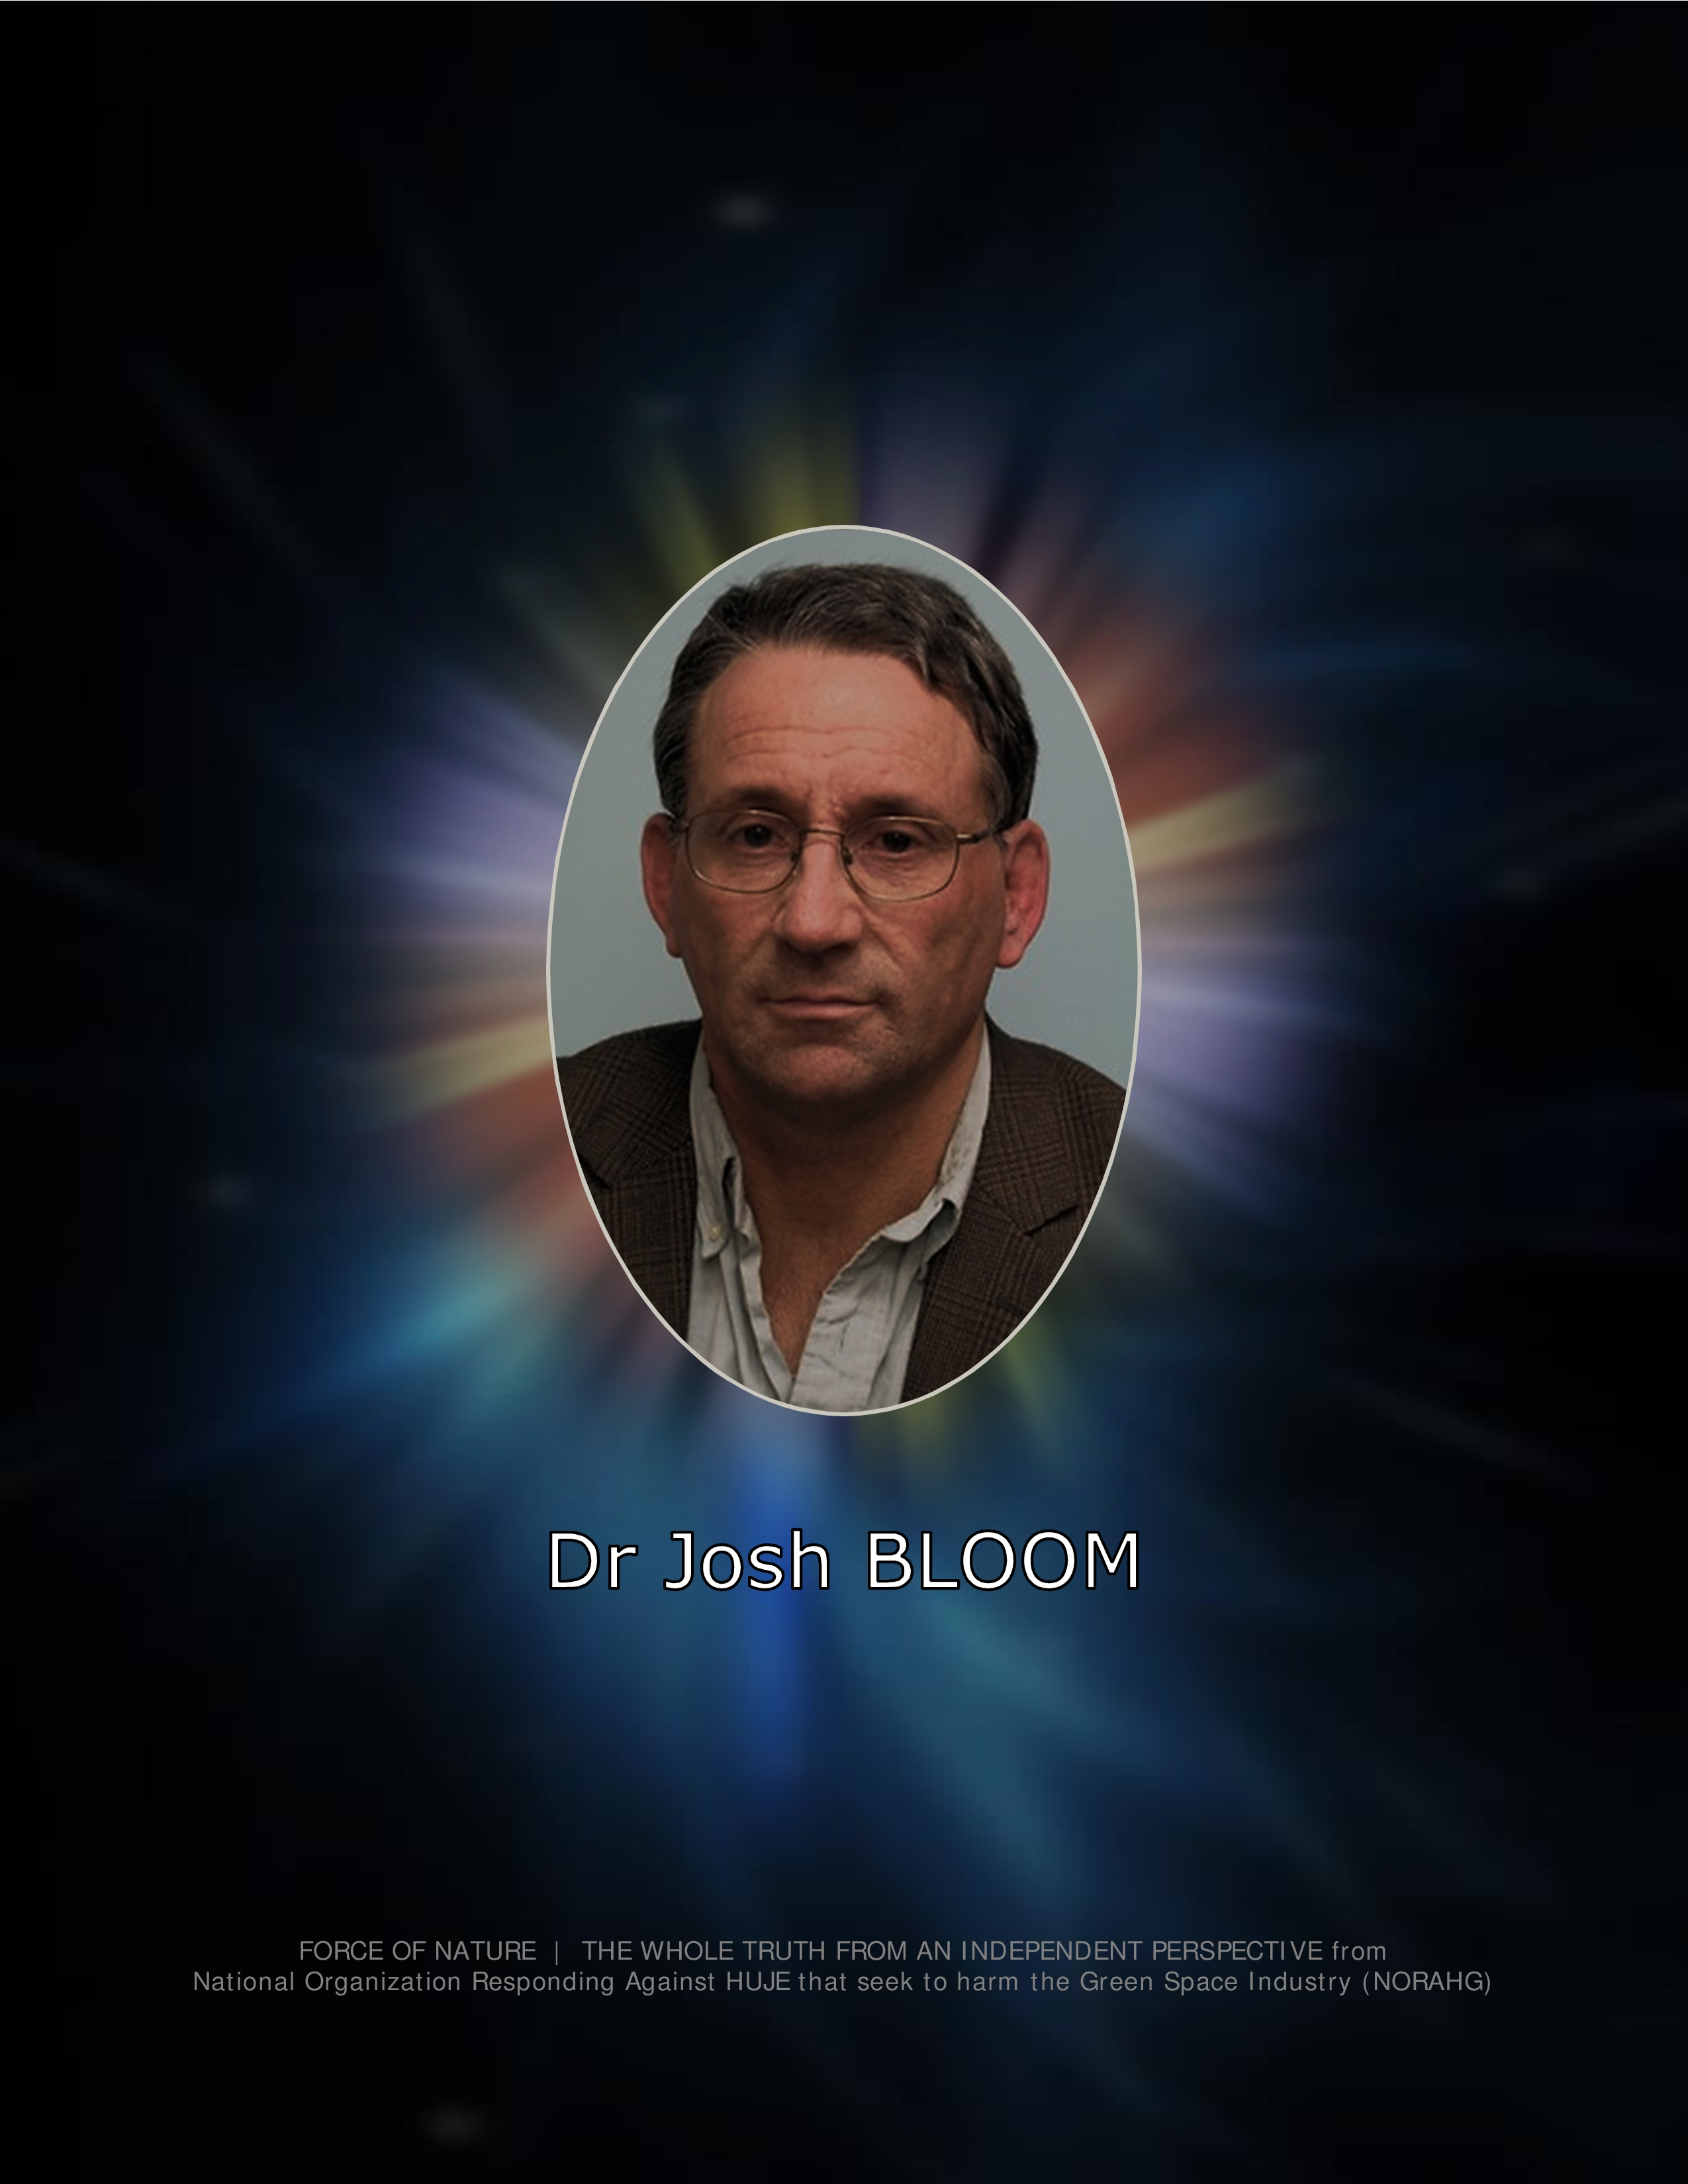 Dr Josh Bloom -- American Council on Science and Health